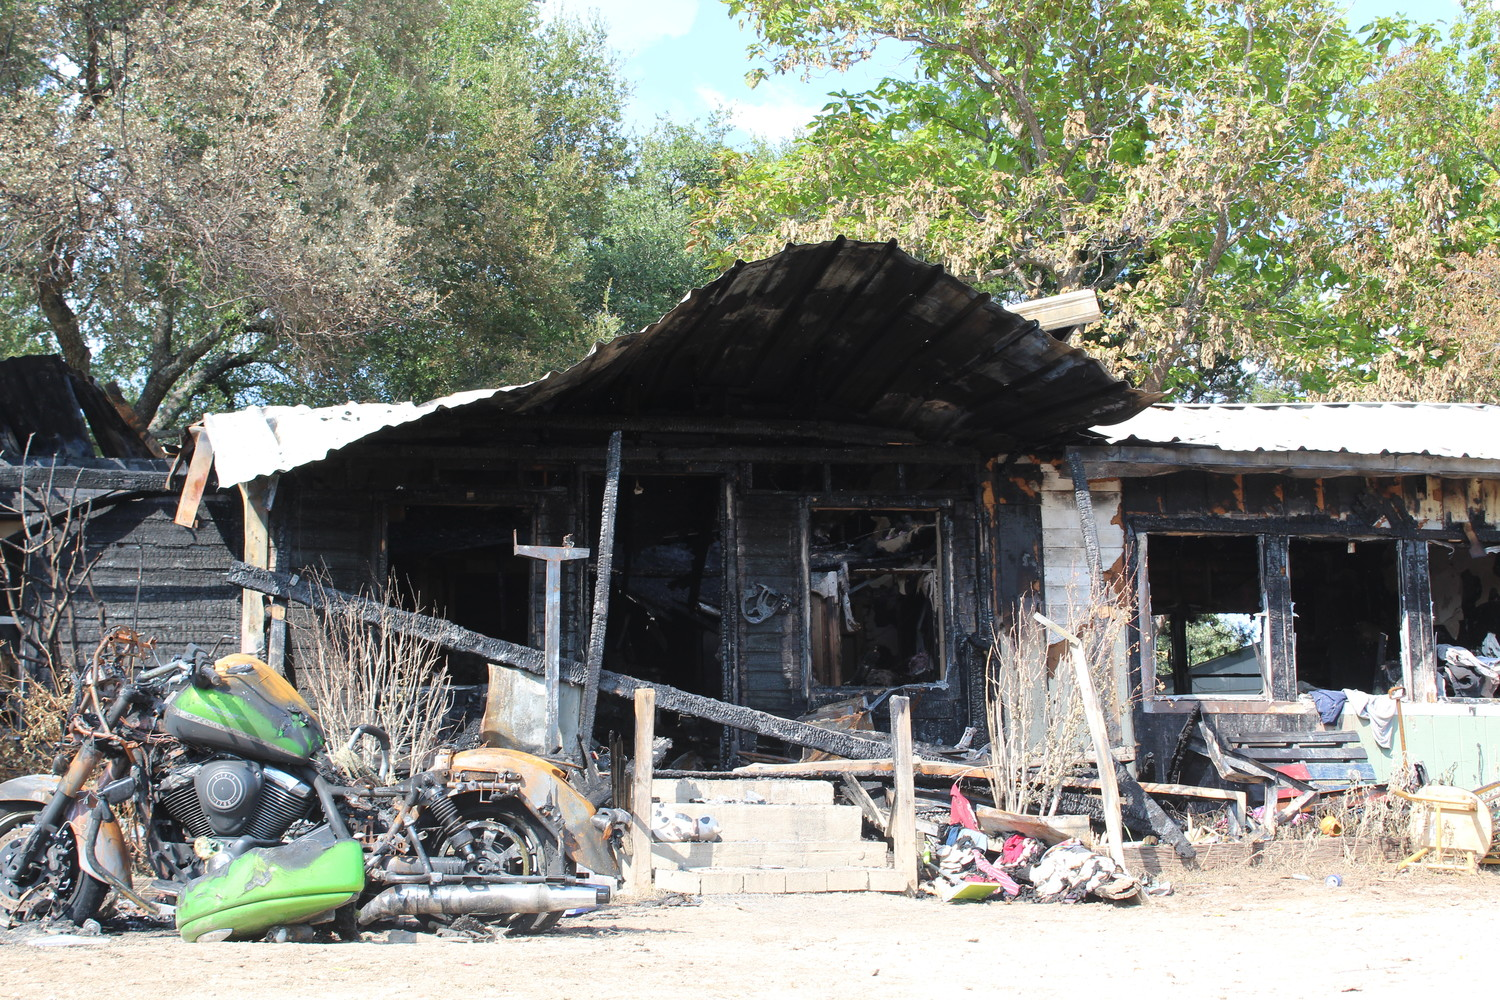 Witnesses say Gary Lee Dill approached the porch at this property in the 800 block of CR 270 and lit various clothing and paper on fire with a tiki torch on July 4. The house burned, destroying the property and contents.